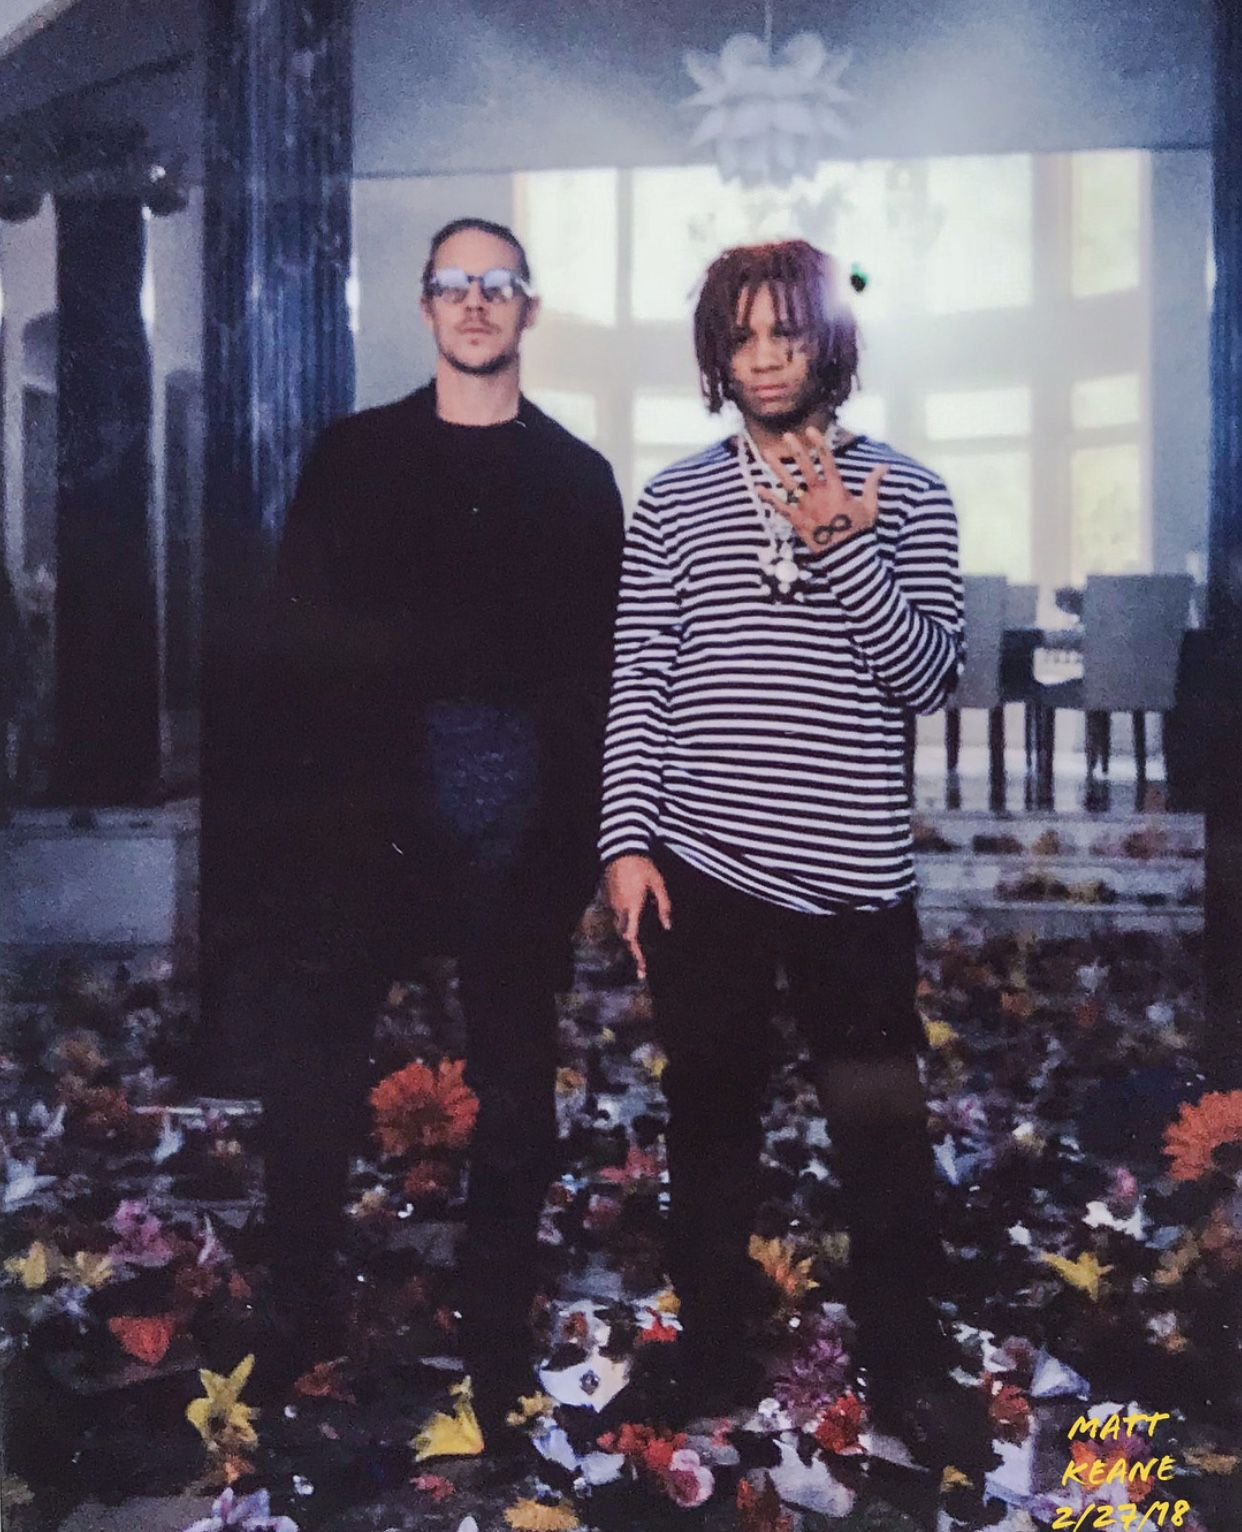 Diplo Rapper >> Trippie With Diplo Trippie Redd Celebrities Best Rapper